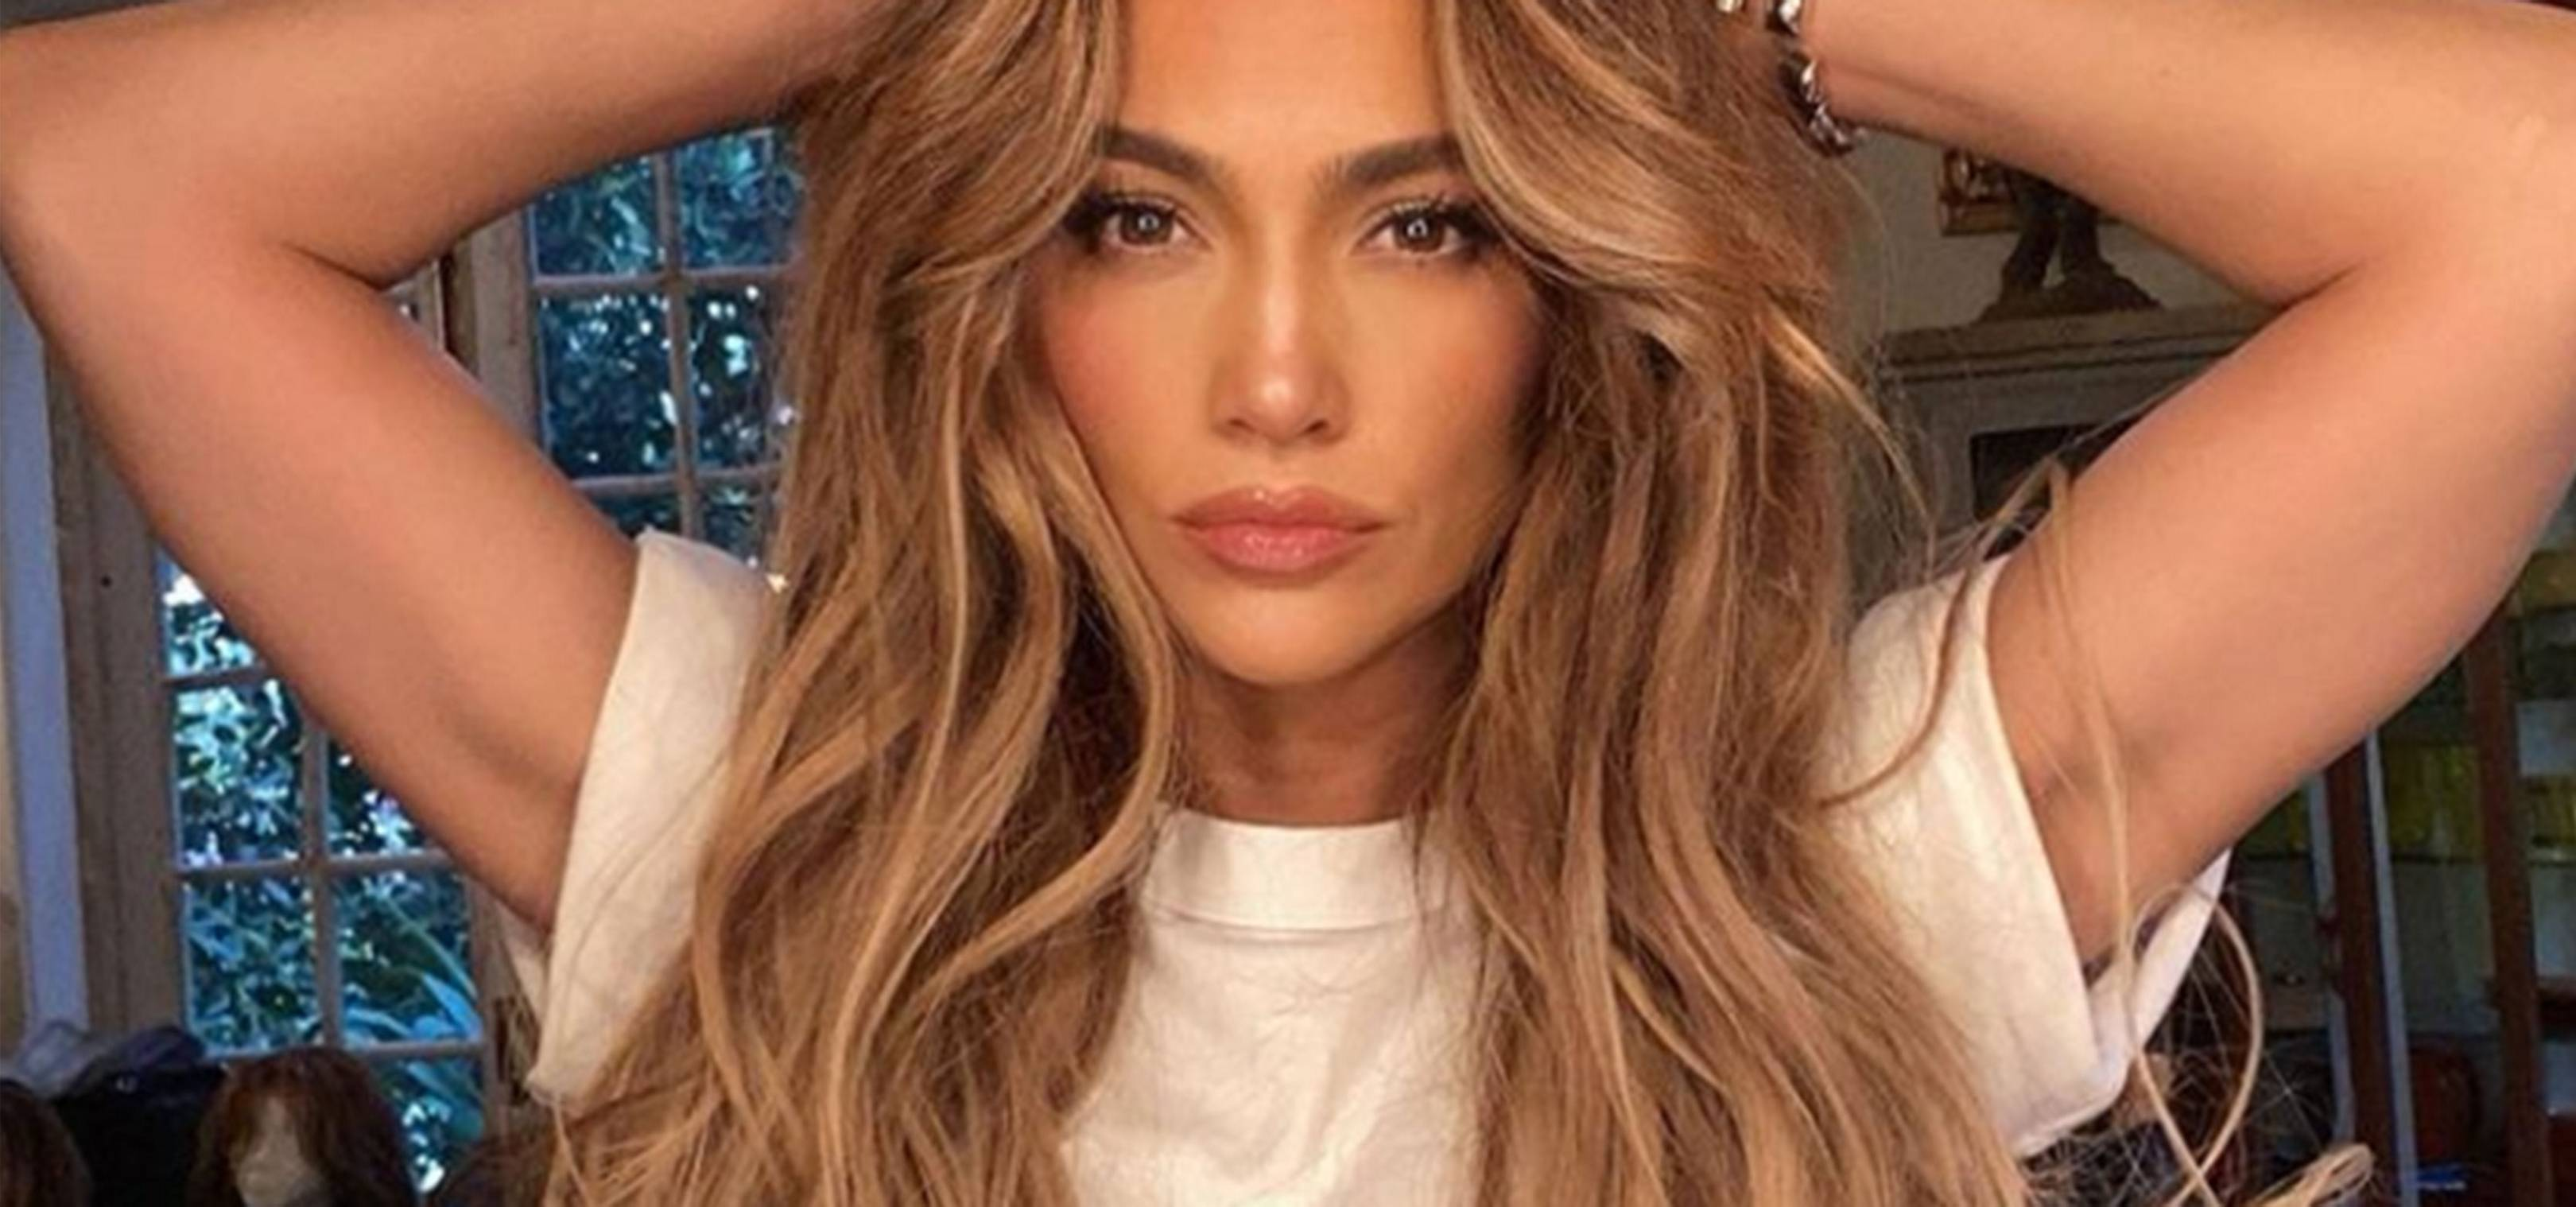 'Invisible layers' are the face-framing hair trend that'll give you instant cheekbones